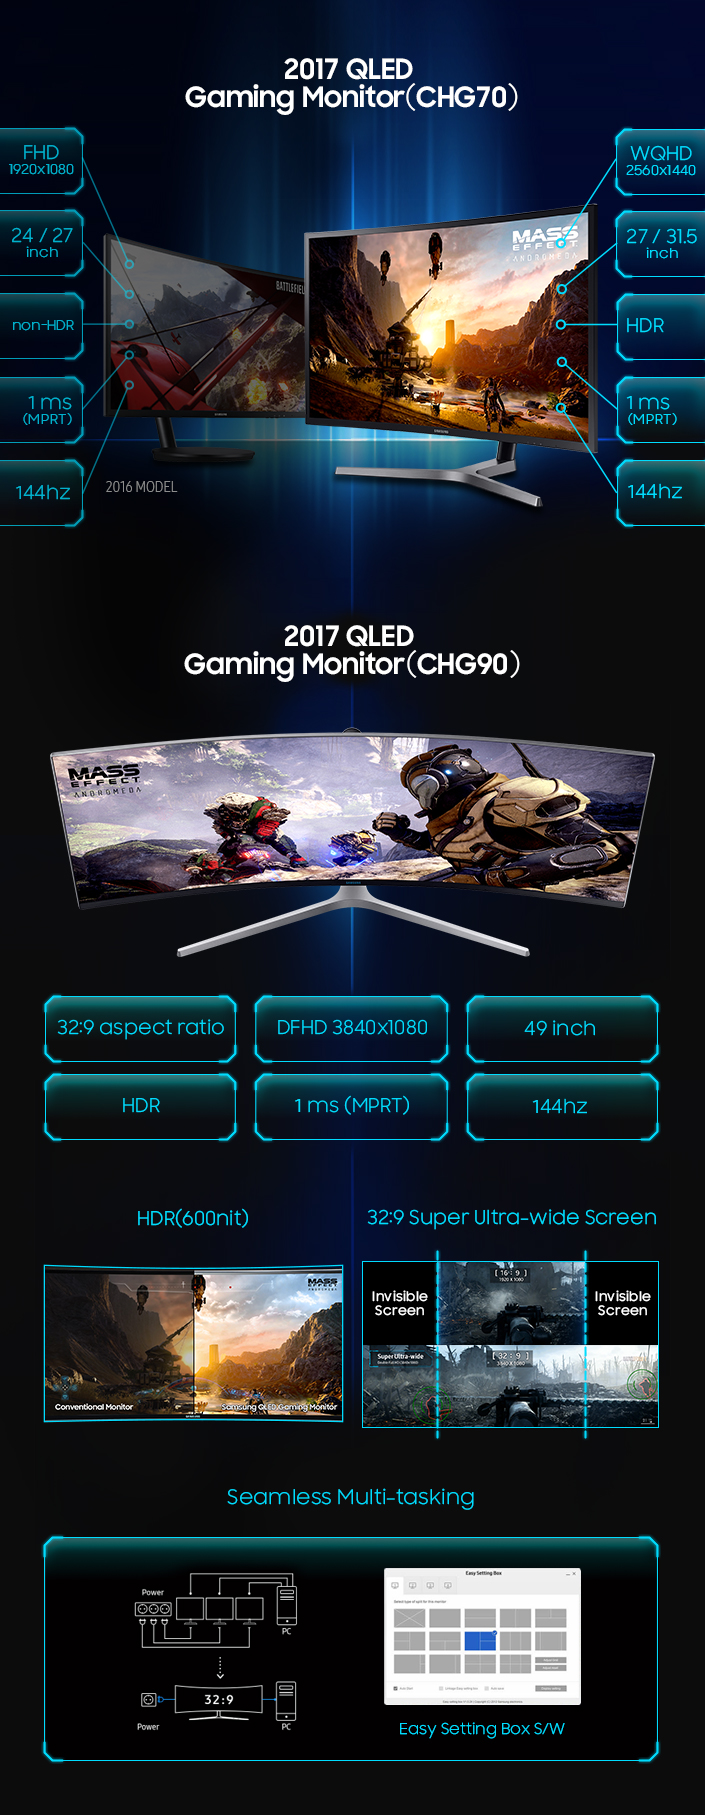 Samsung QLED Gaming Monitor 2017 Infographic